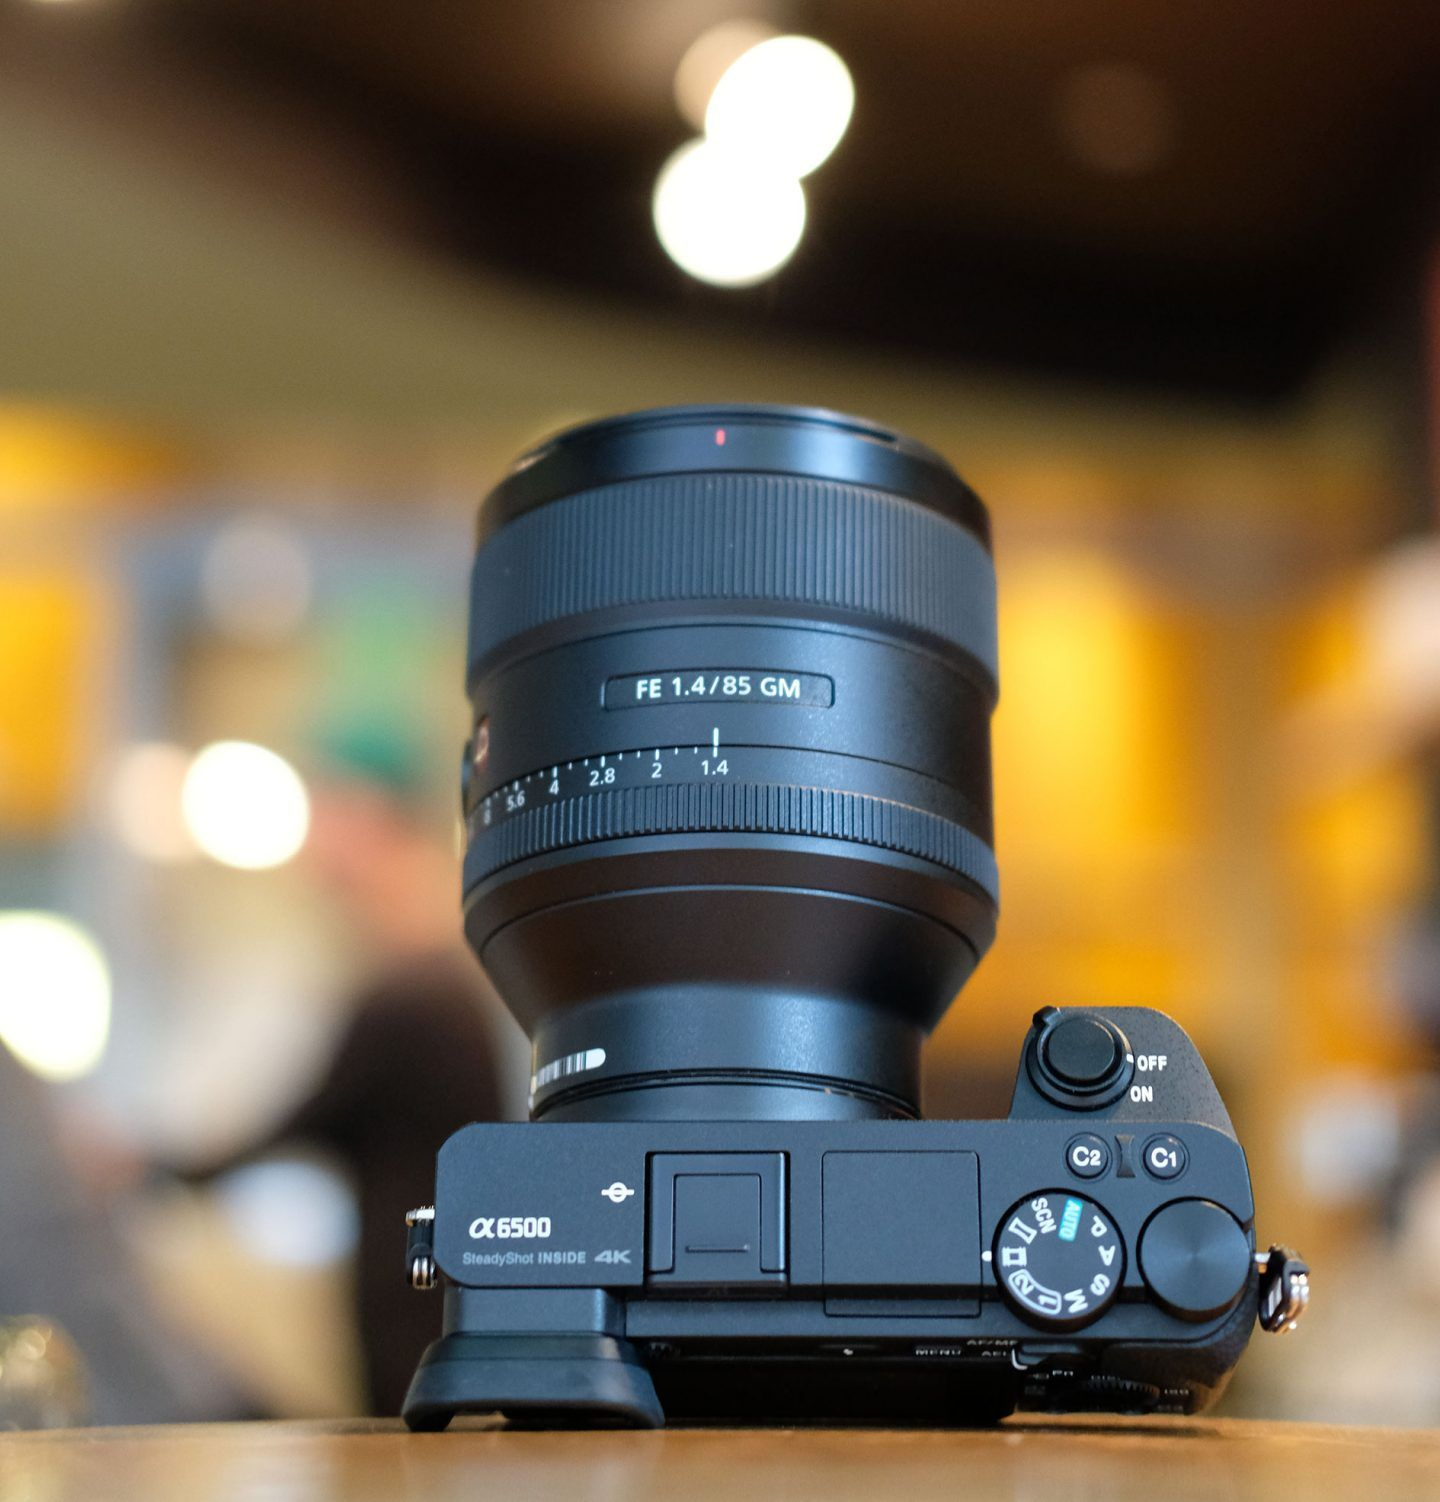 Looking For The Best Sony Lenses In My Buyers Guides I Ll List The Best Sony Lenses For Portraits Weddings Sport Sony Lenses Wedding Photography Lenses Sony